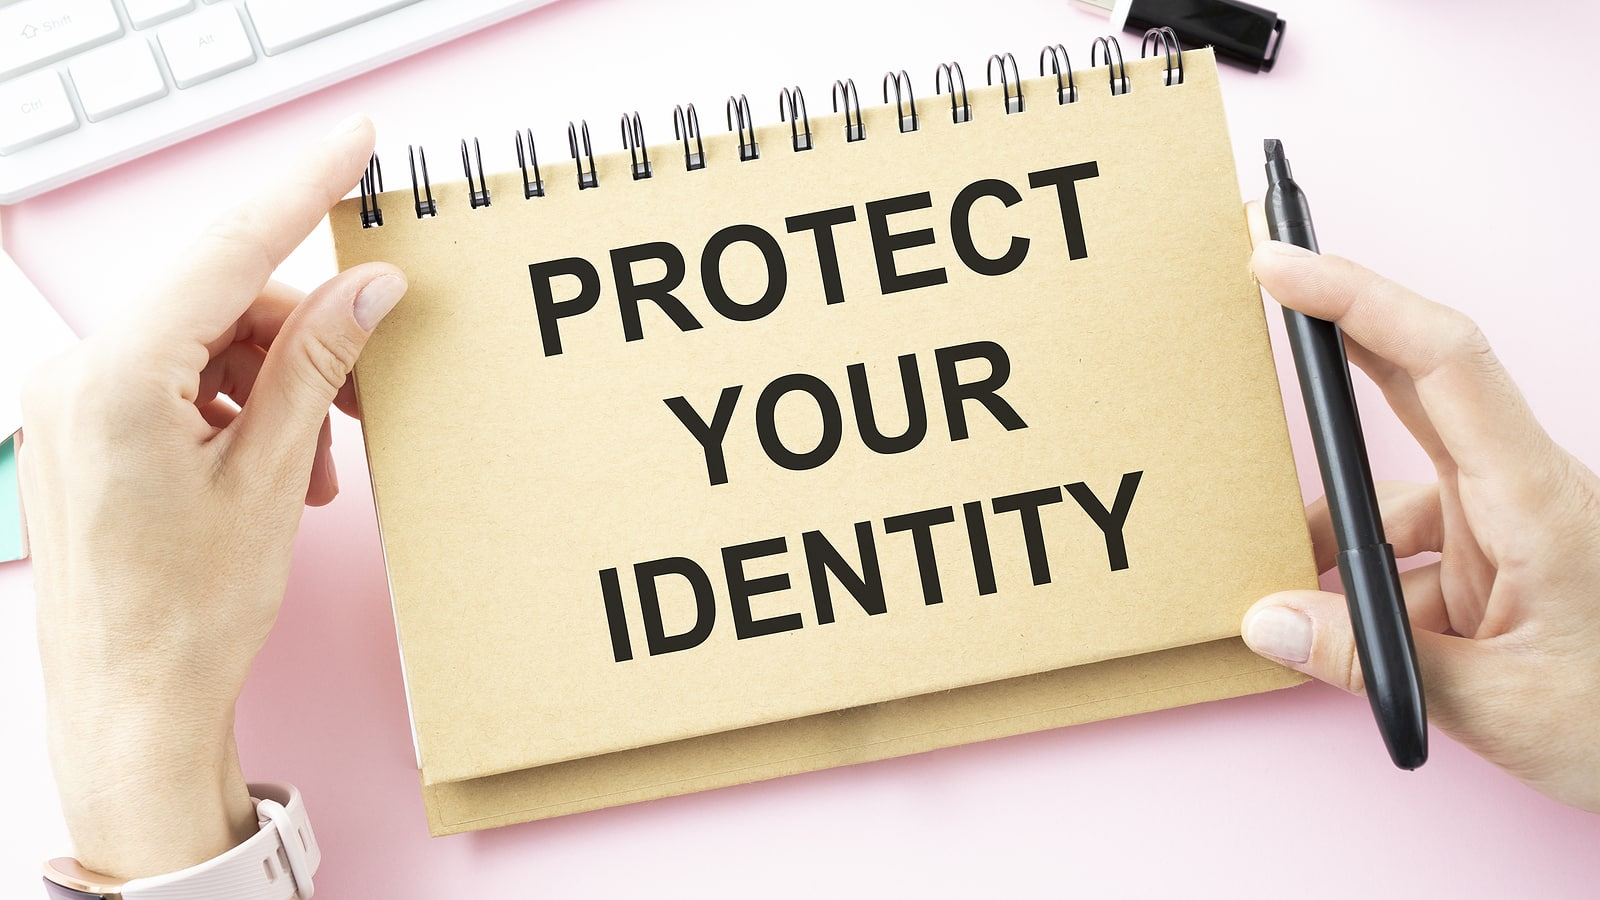 How to Protect your Identity